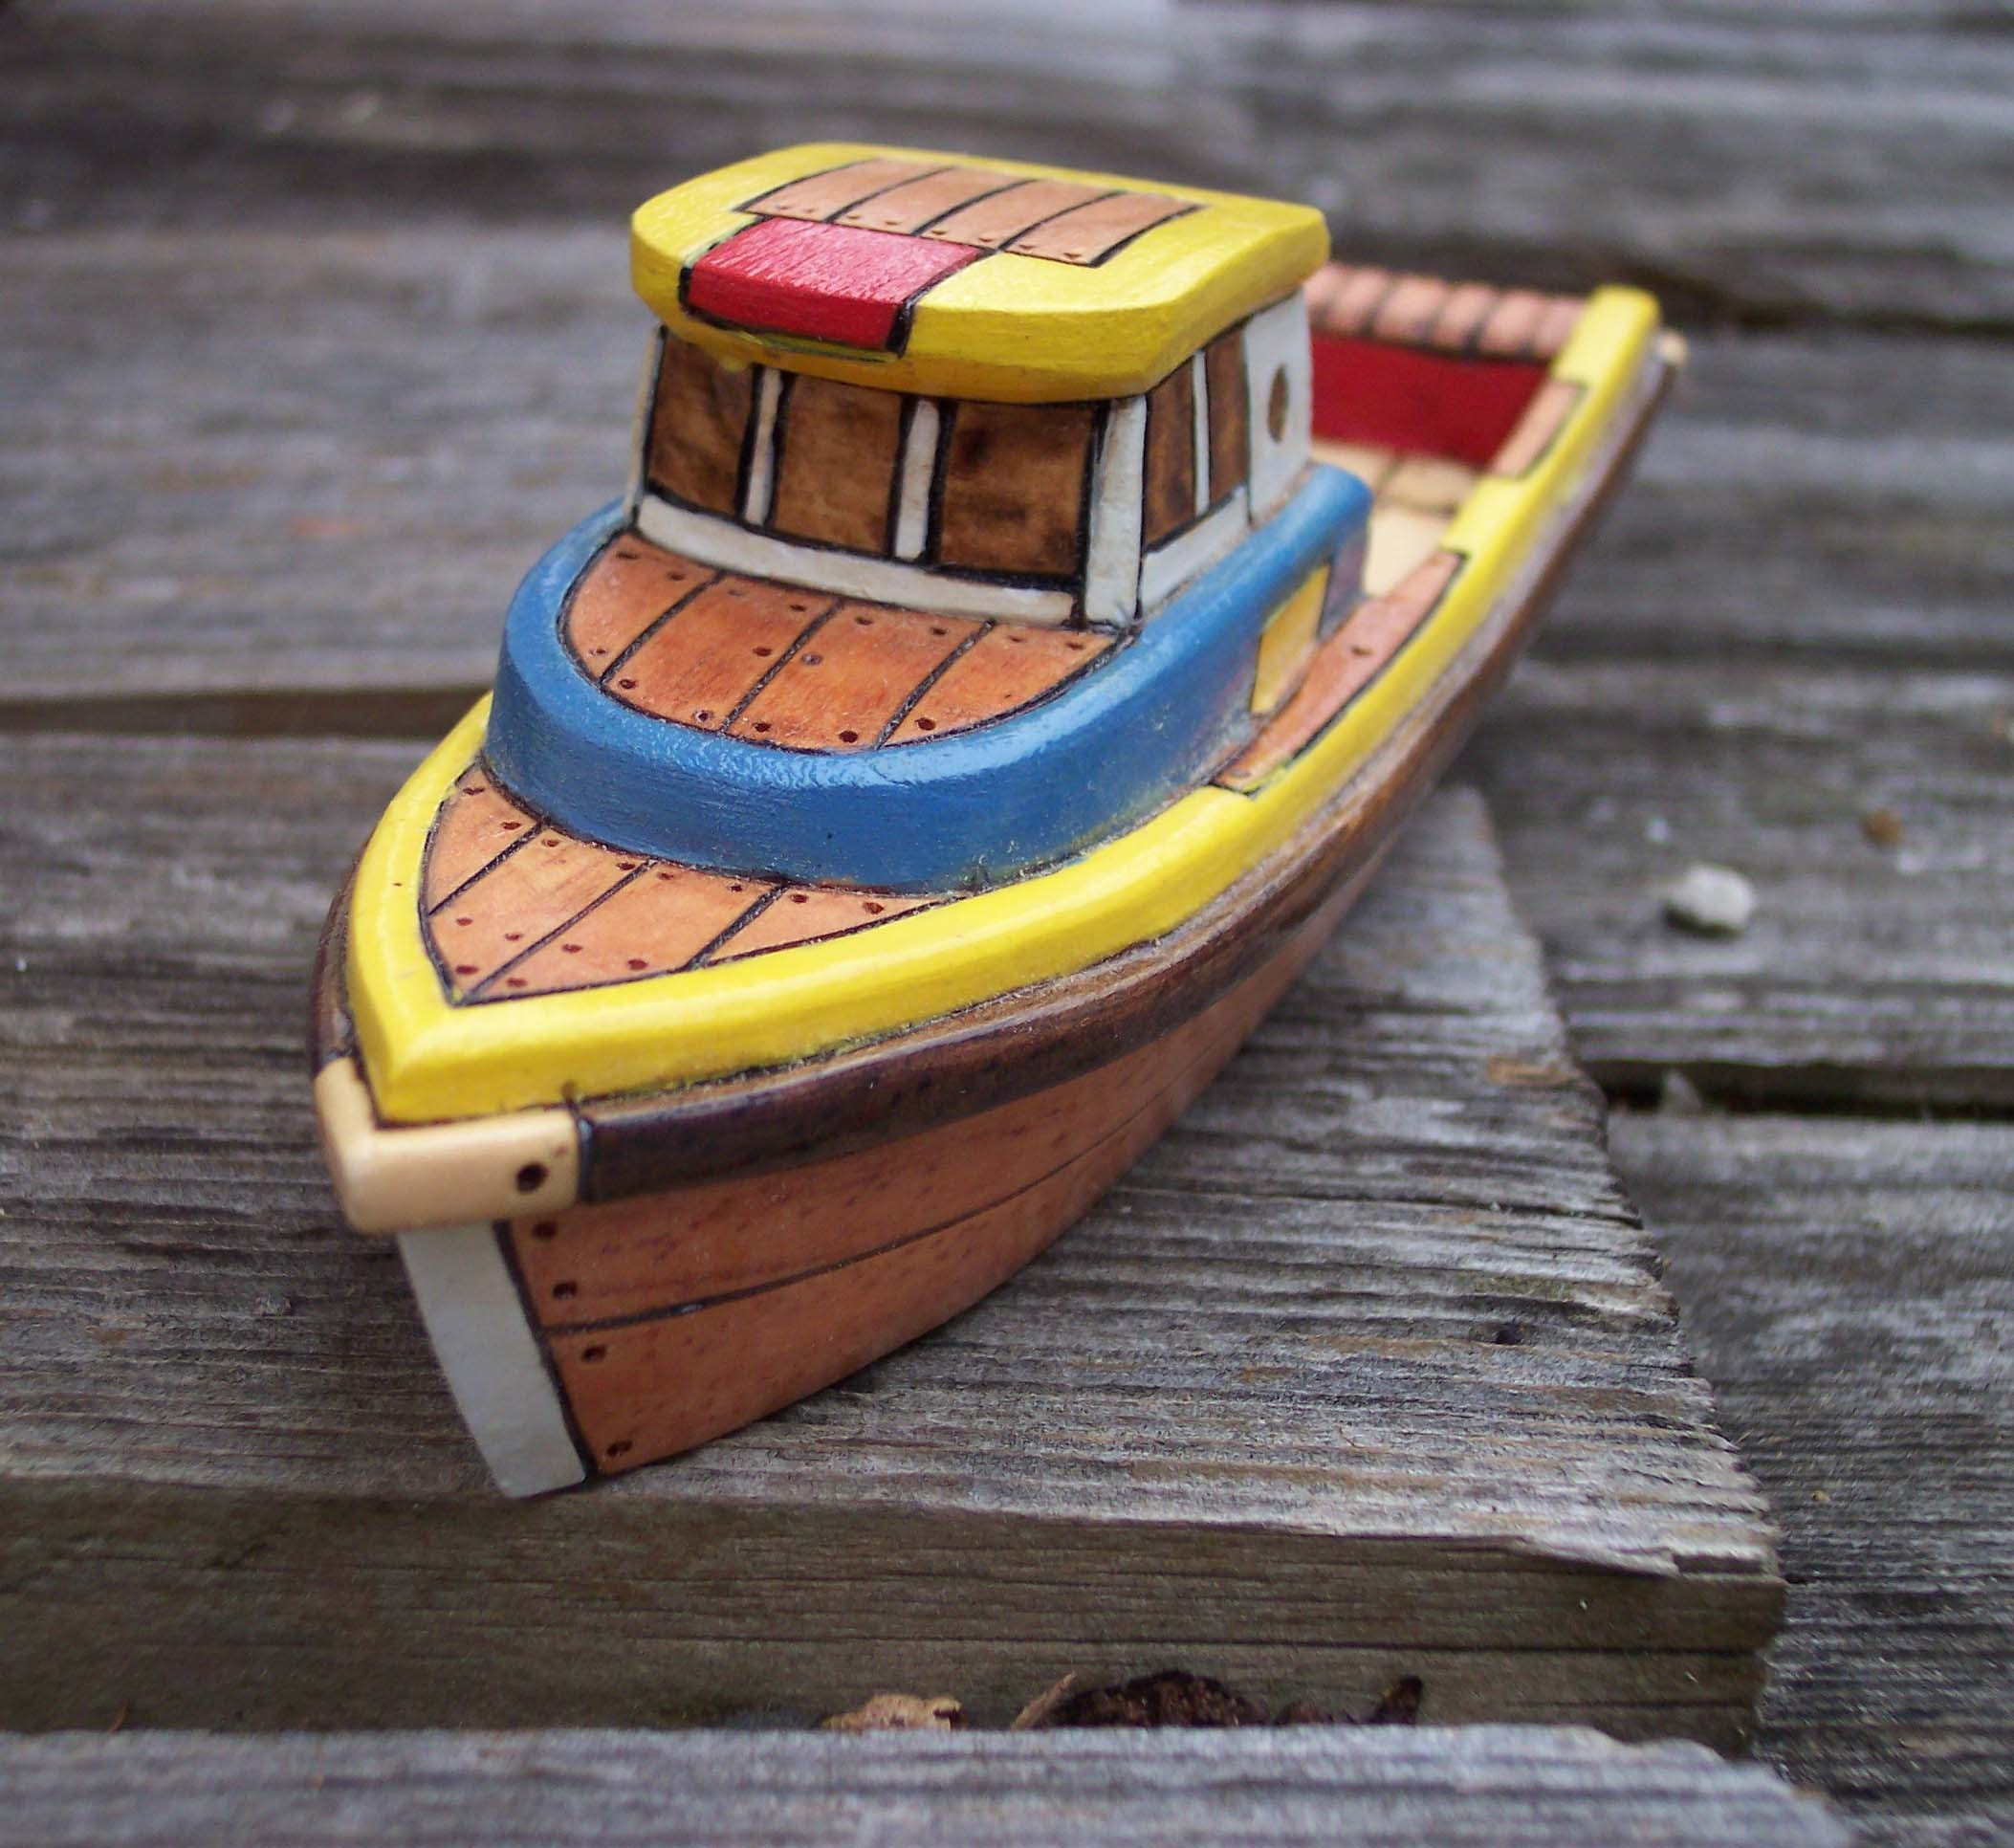 Yellow and Blue Toy Wooden Boat